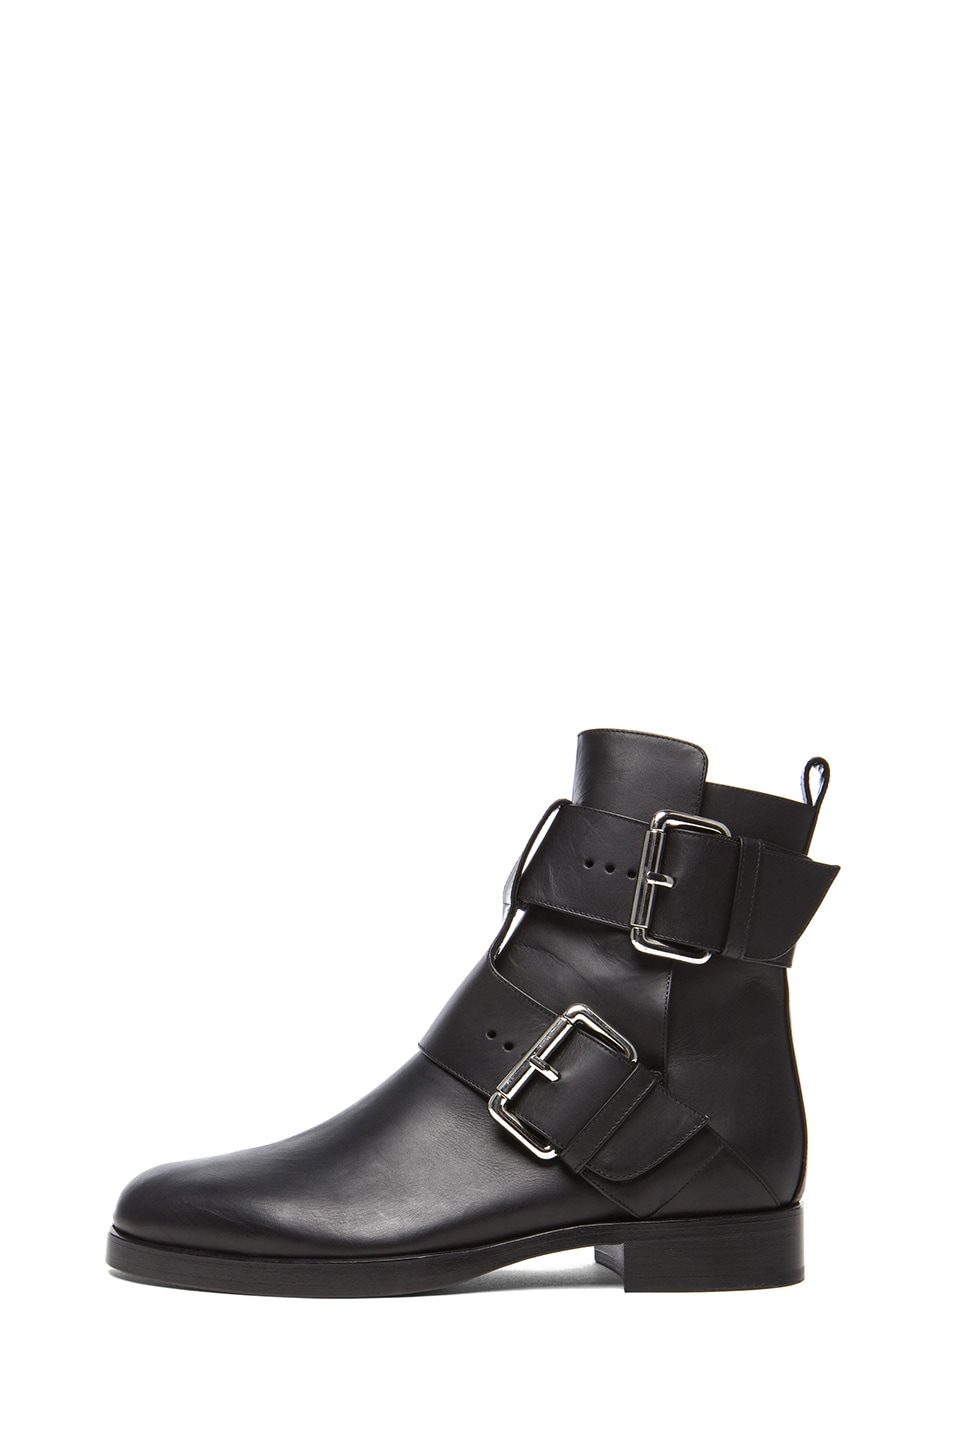 Image 1 of Pierre Hardy Matte Calfskin Leather Booties in Black